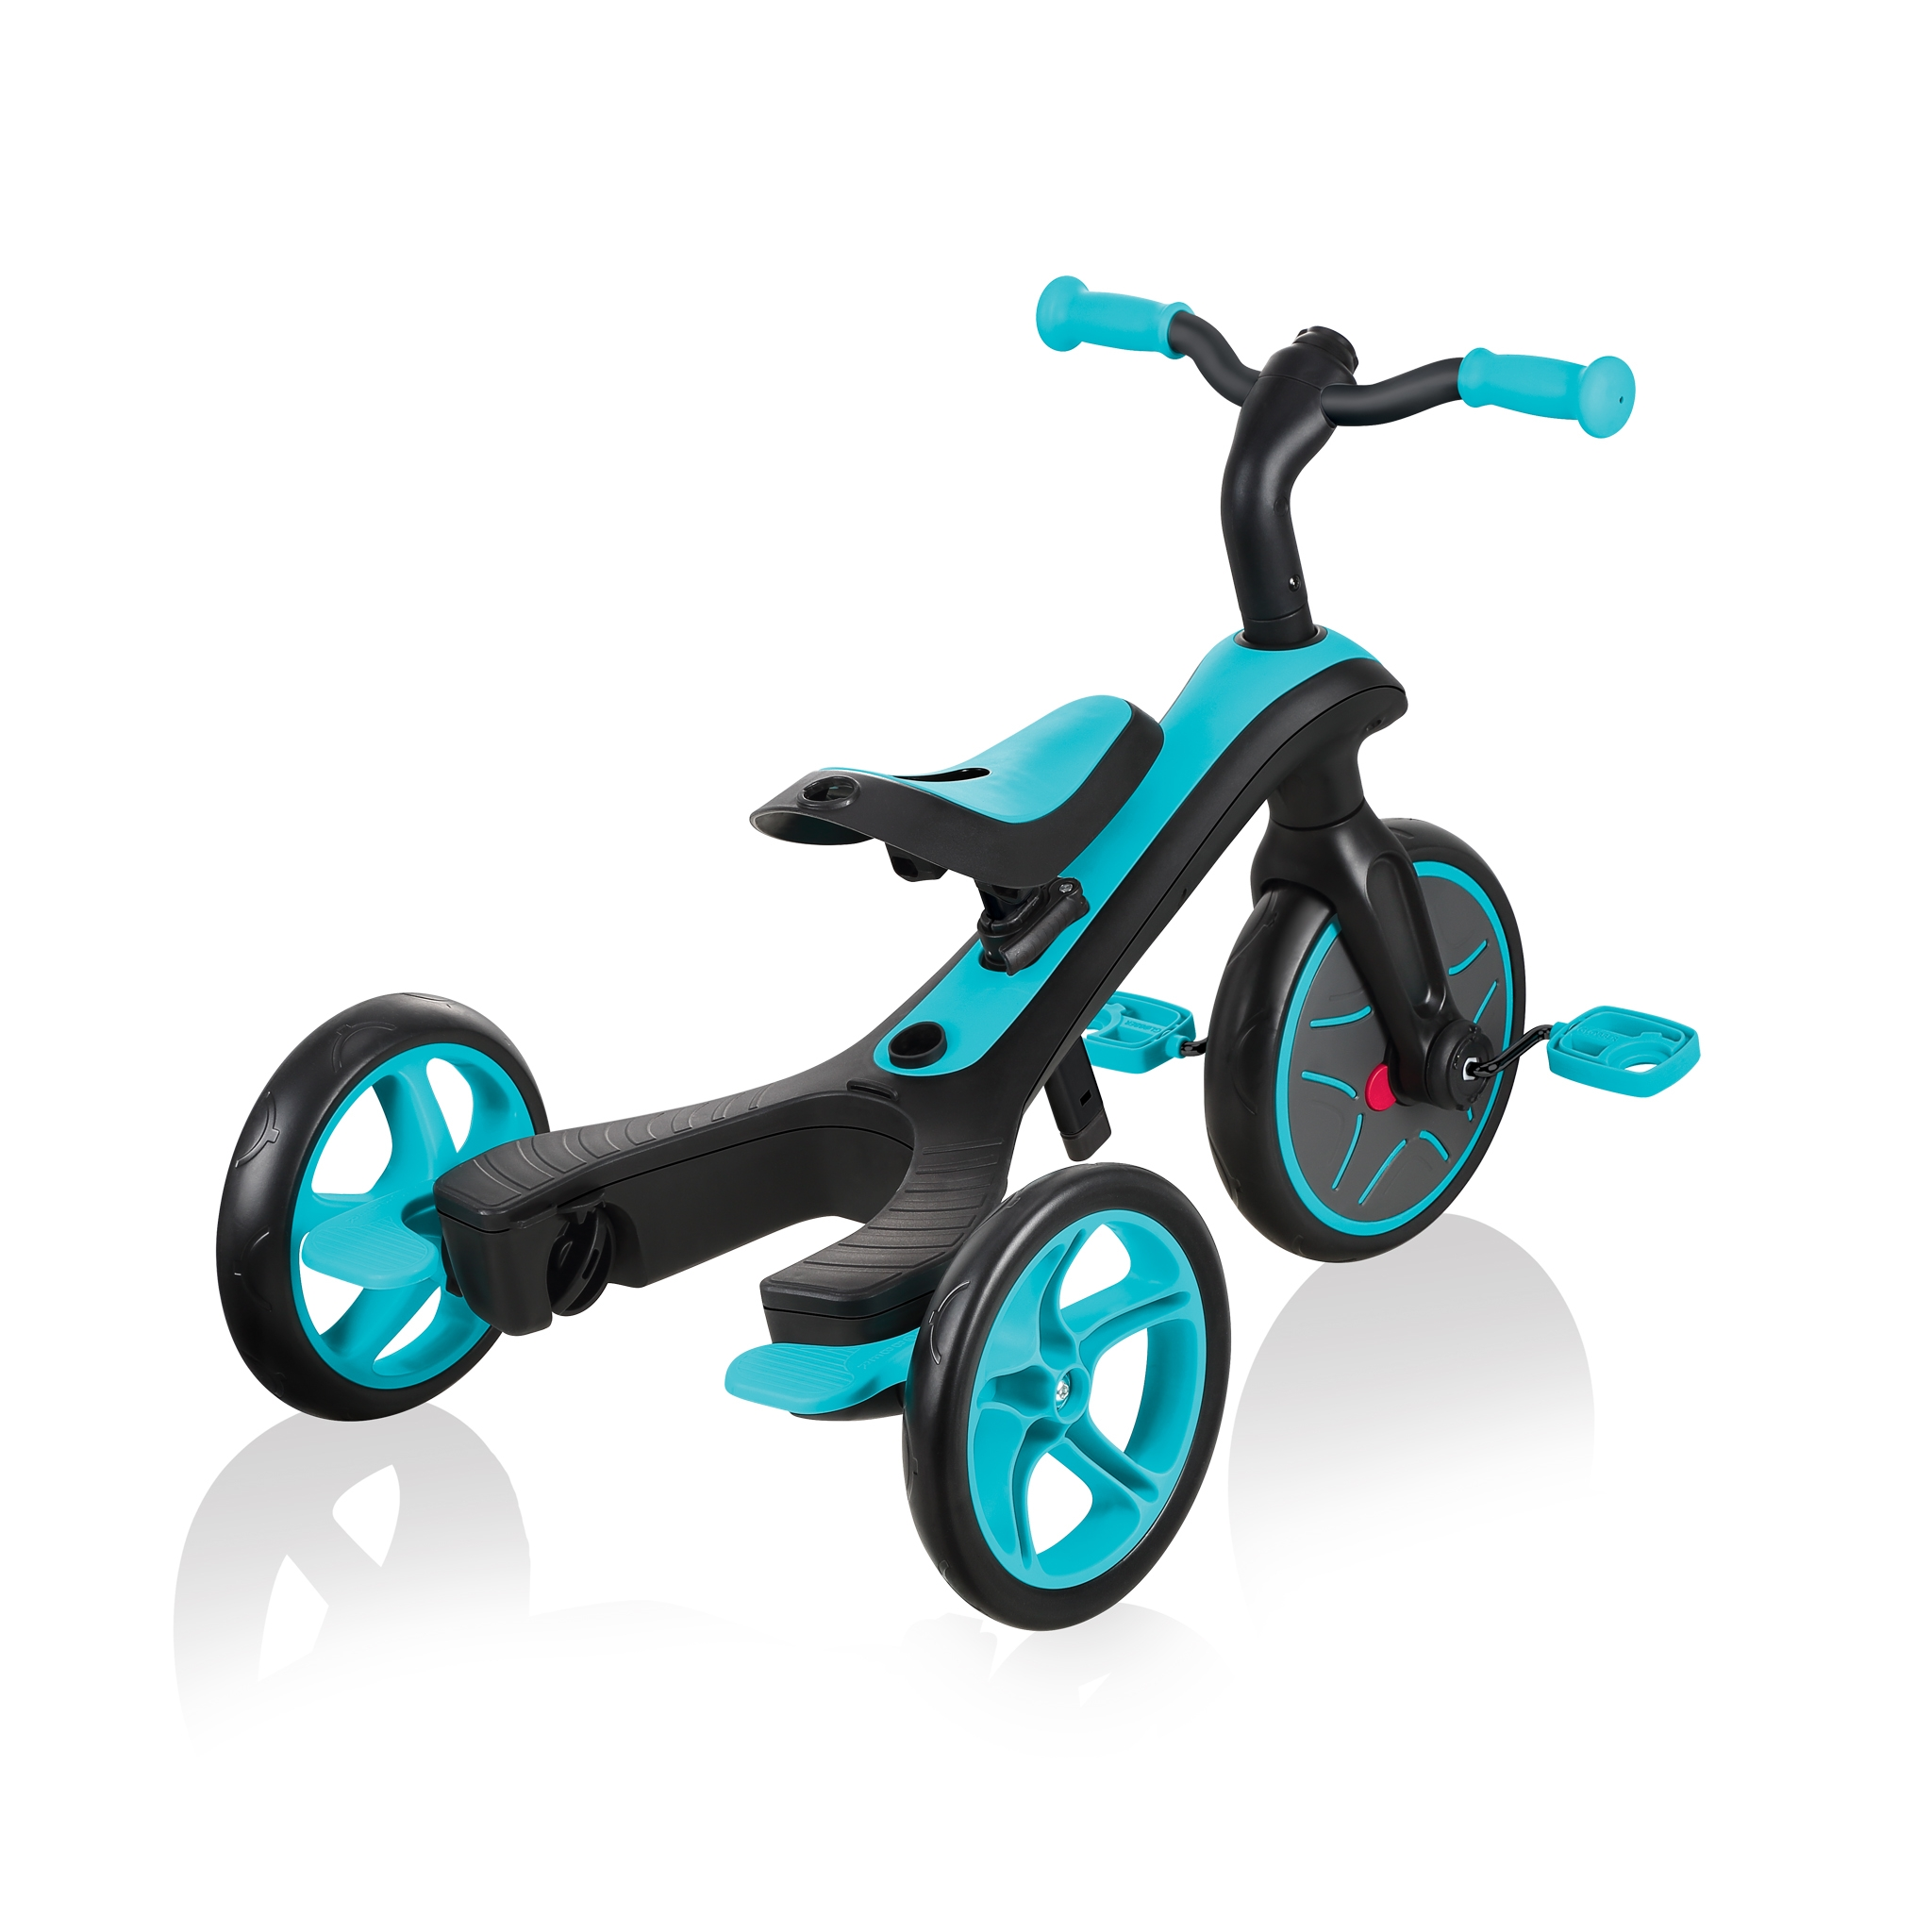 Globber-EXPLORER-TRIKE-3in1-all-in-one-baby-tricycle-and-kids-balance-bike-with-patented-wheel-mechanism-transformation_teal 5